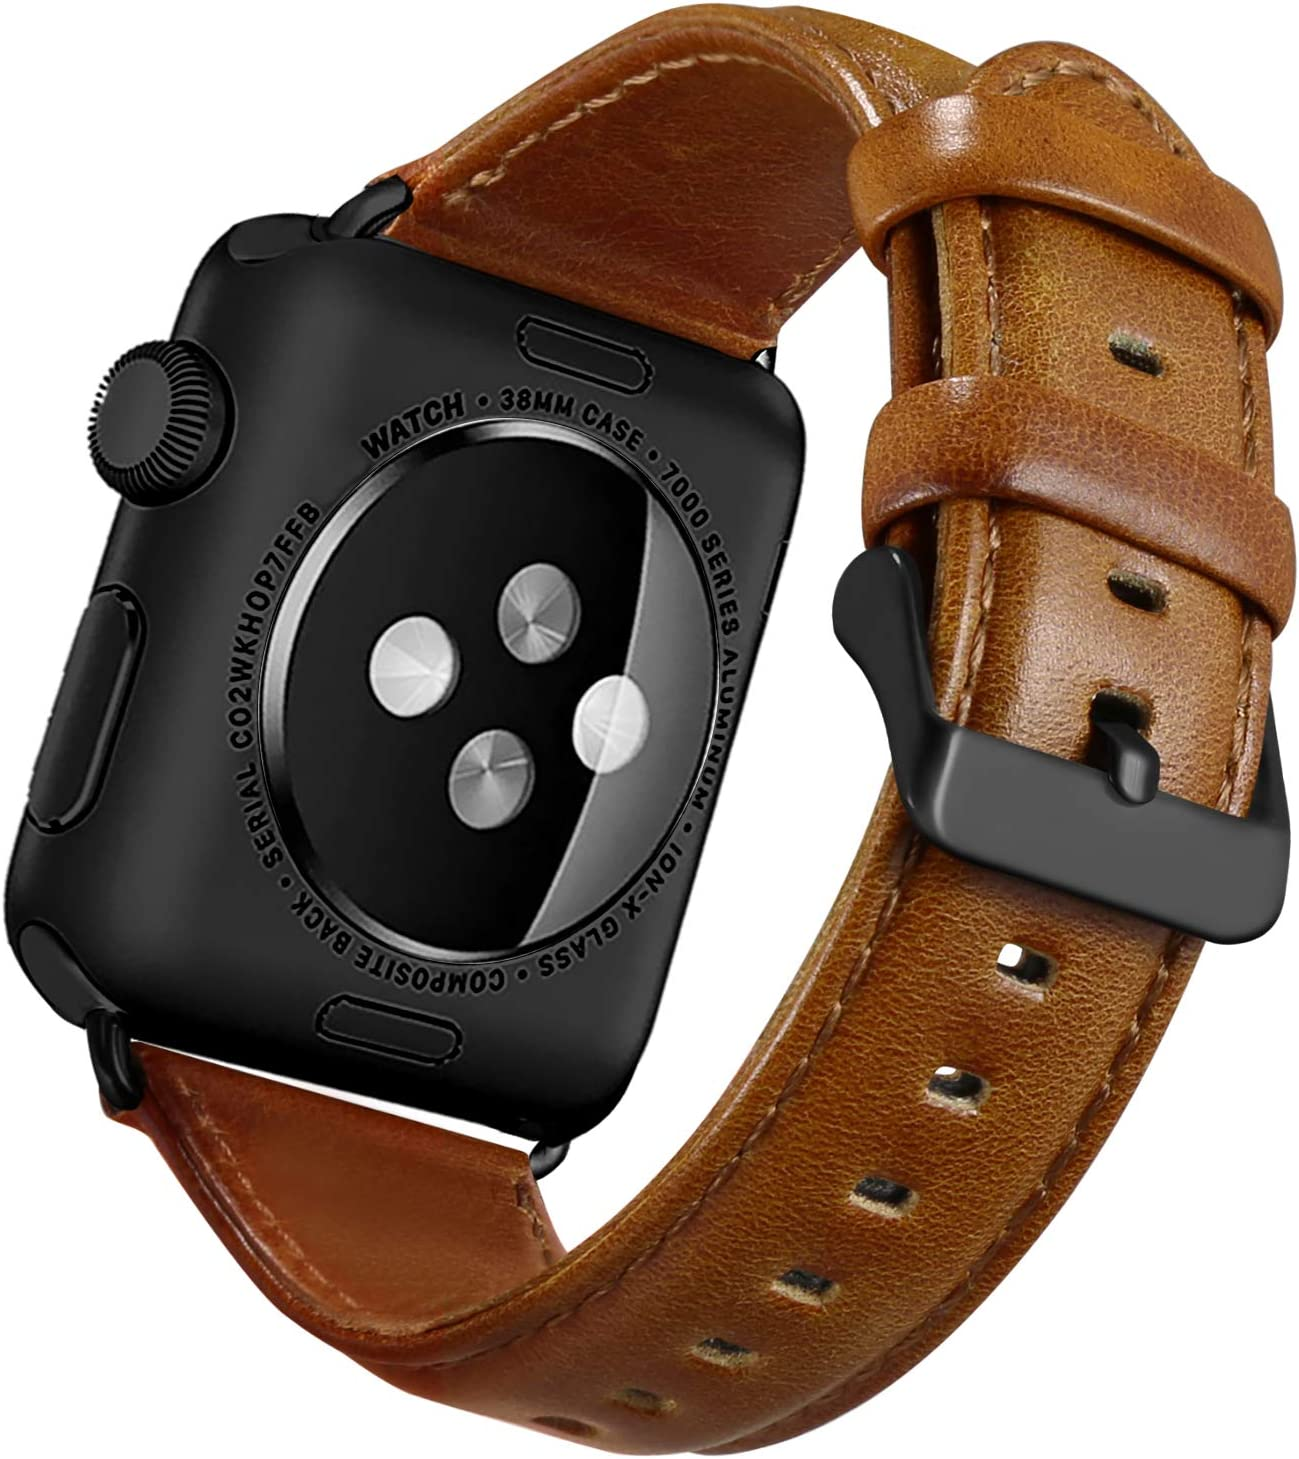 UMAXGET Compatible with Apple Watch Series 3 Band 44mm 38mm 40mm 42mm, Classic Genuine Leather Replacement Bands with Black Buckle Connector Compatible with iWatch Series 5/4/3/2/1 for Men Women(38mm/40mm, Light Brown)